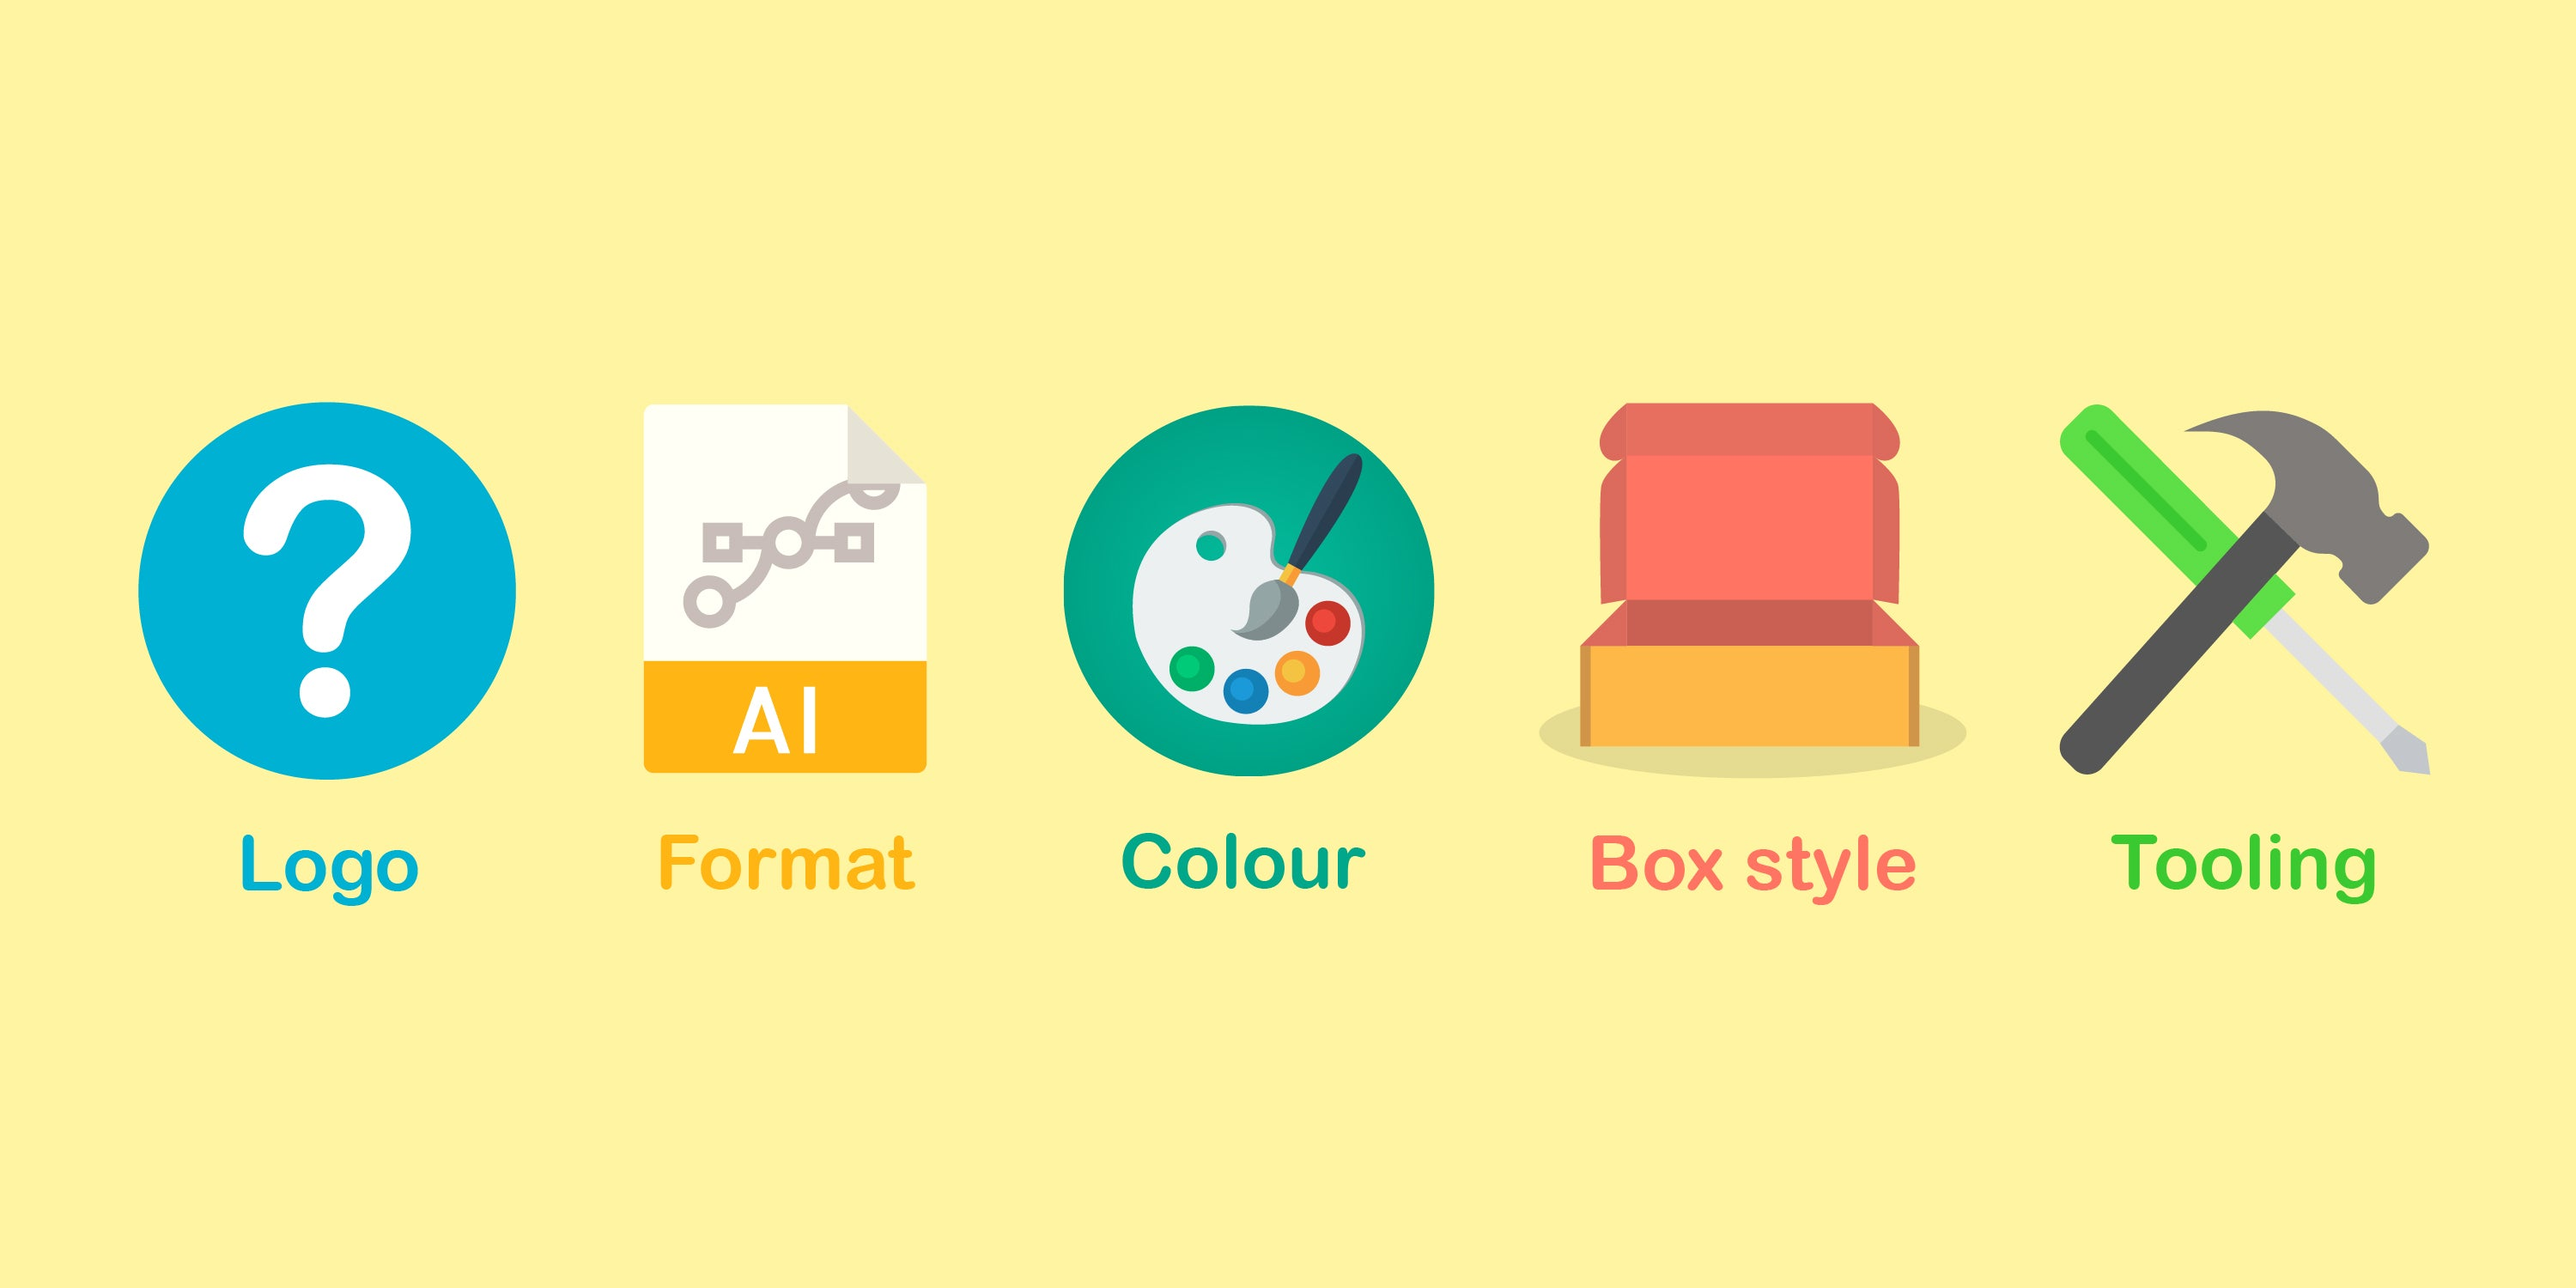 5 Things to consider when designing your custom boxes